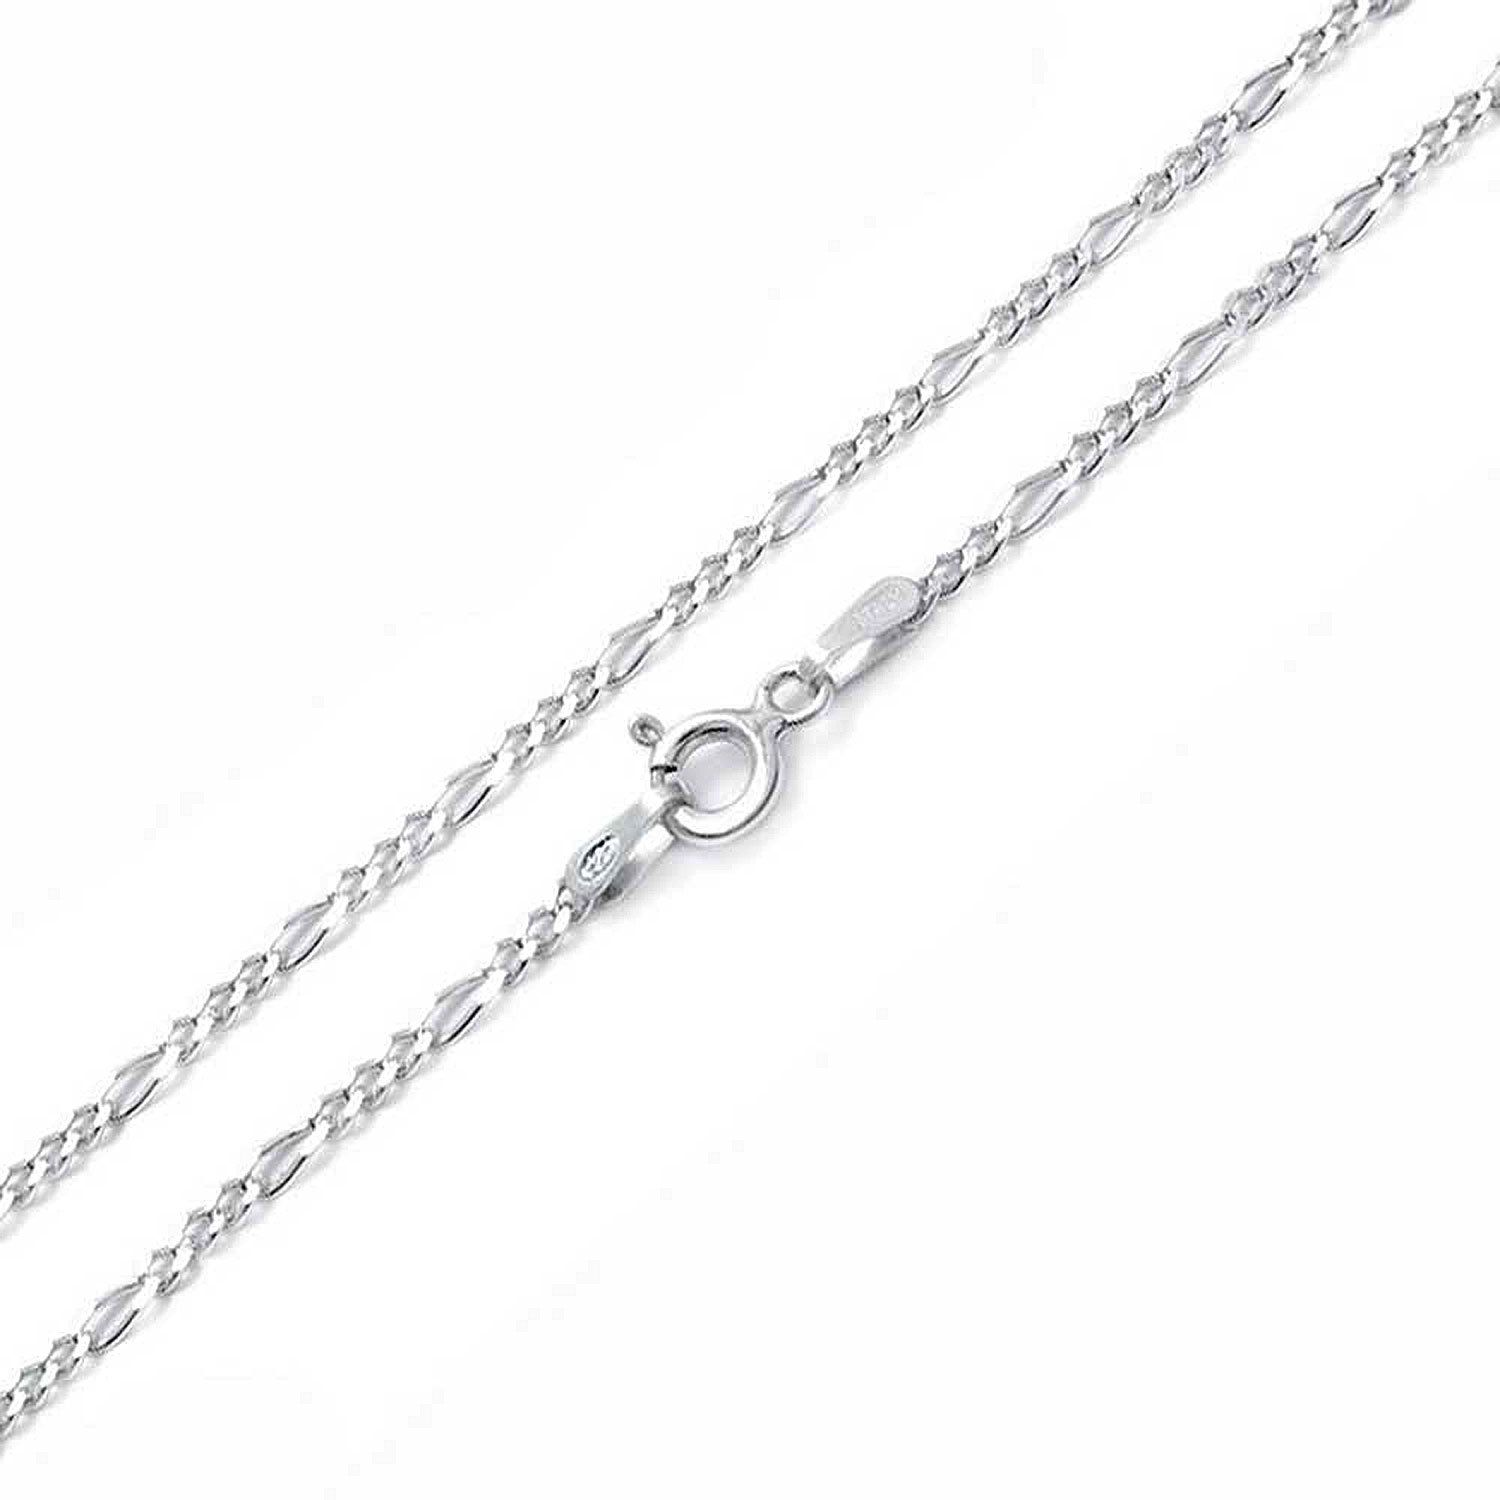 d0b0a22c5b1 Simple Plain Figaro Link Chain Anklet Charm Ankle Bracelet 925 Sterling  Silver 50 Gauge Made in Italy 10 Inch: Amazon.co.uk: Amazon.co.uk: